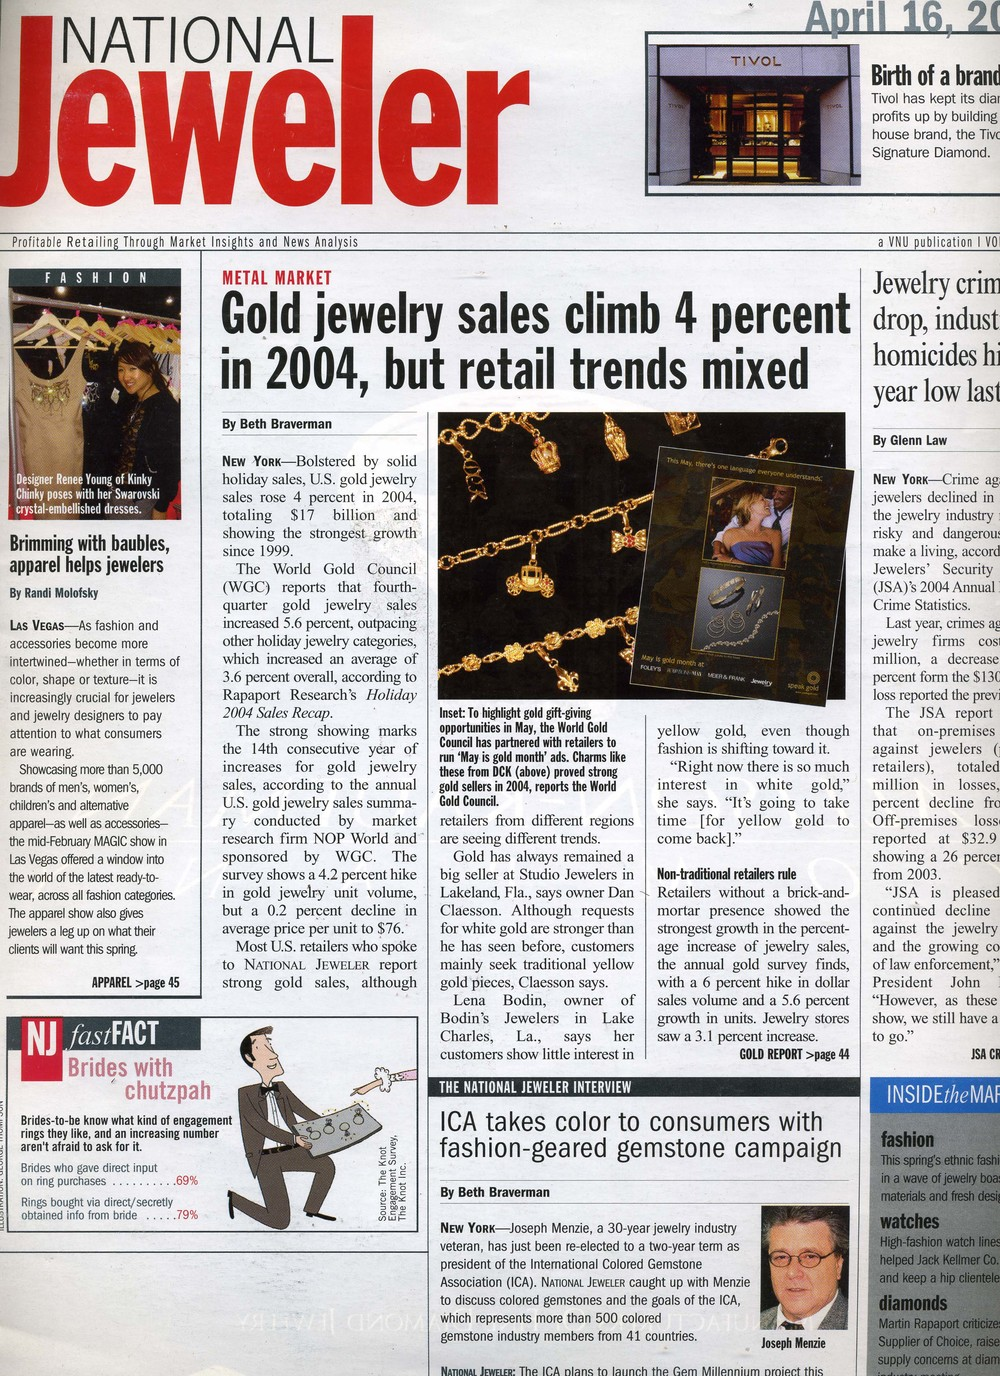 National Jeweler, April 16 '05.jpg